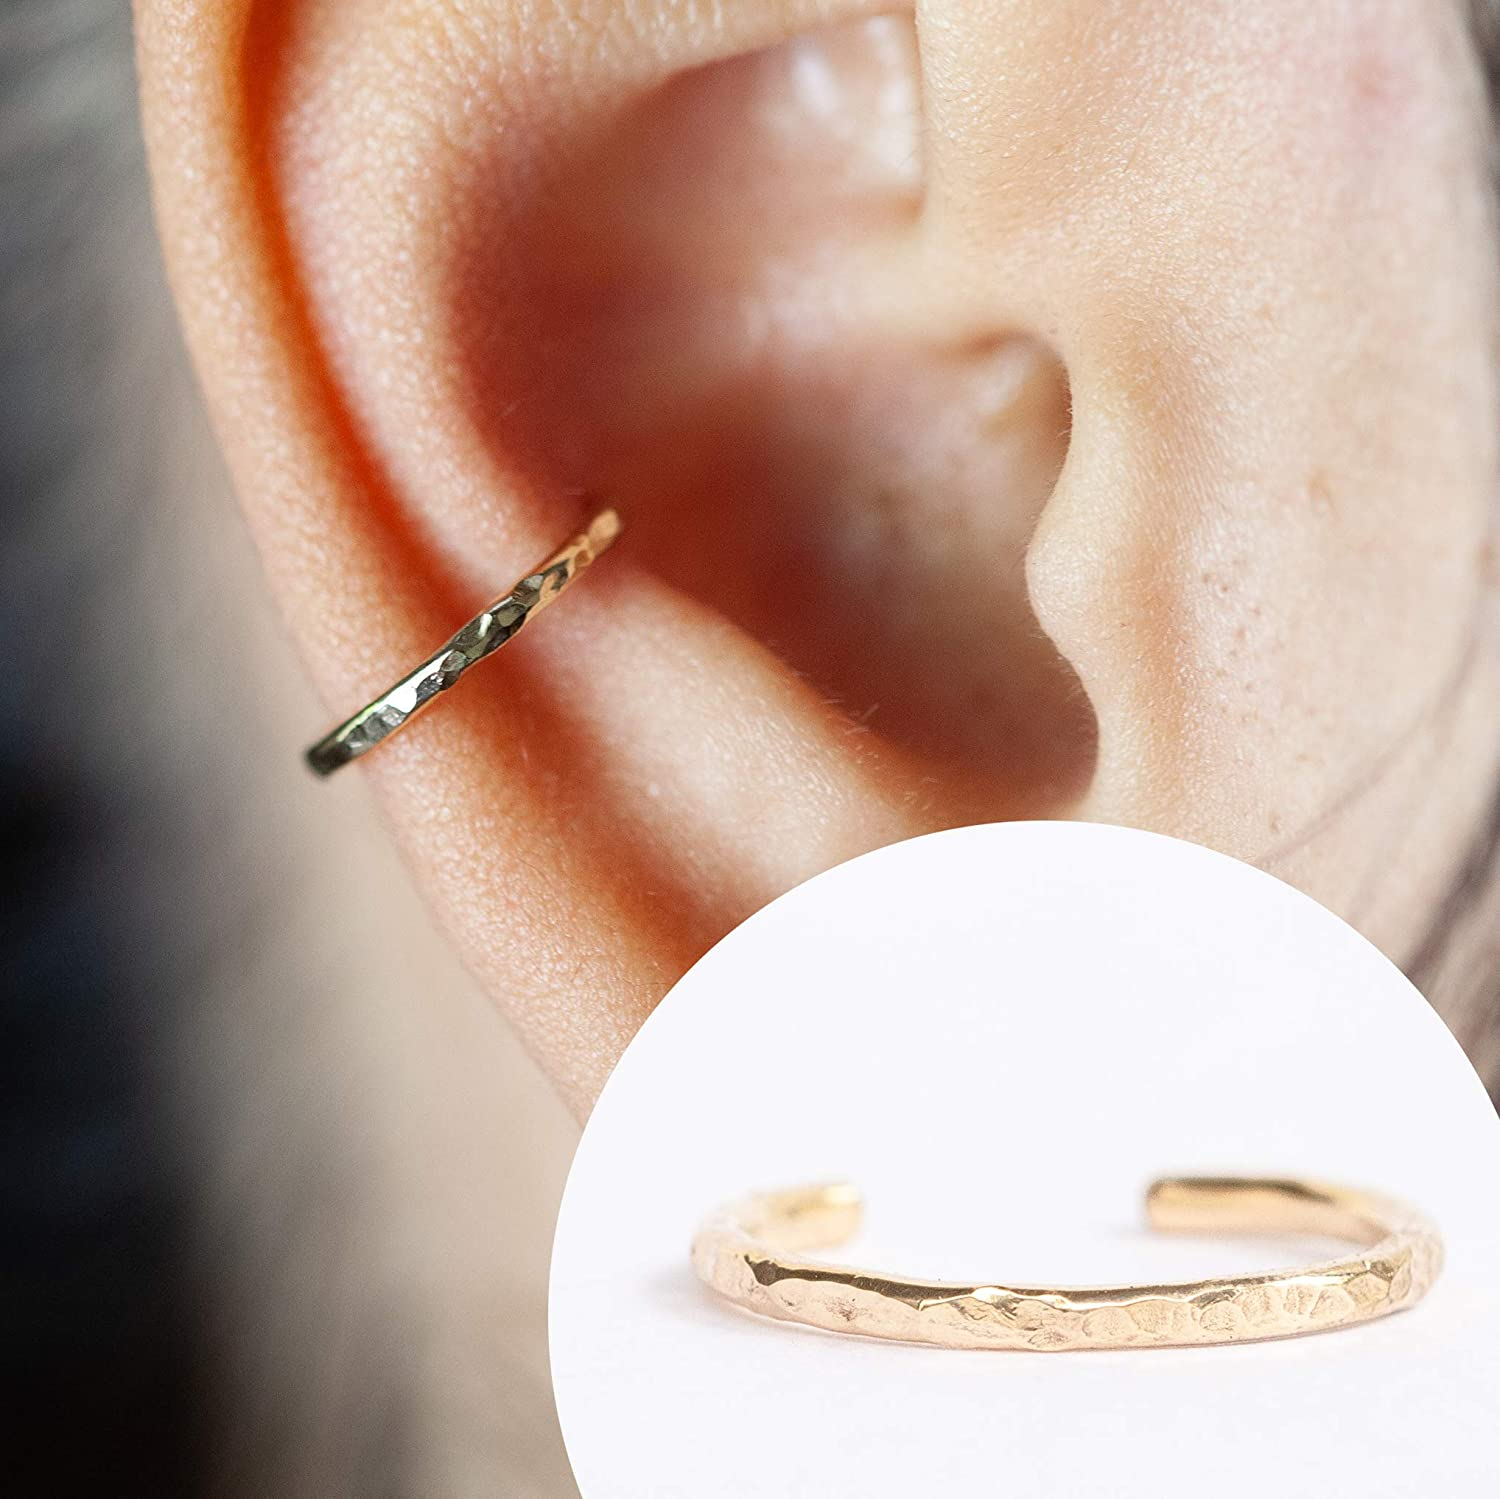 16 Gauge Ear Cuff - For Pierced or Non Pierced - Ear Conch Piercing Hammered Design 14K Gold Filled 16g 10MM 81EP6HAztaL